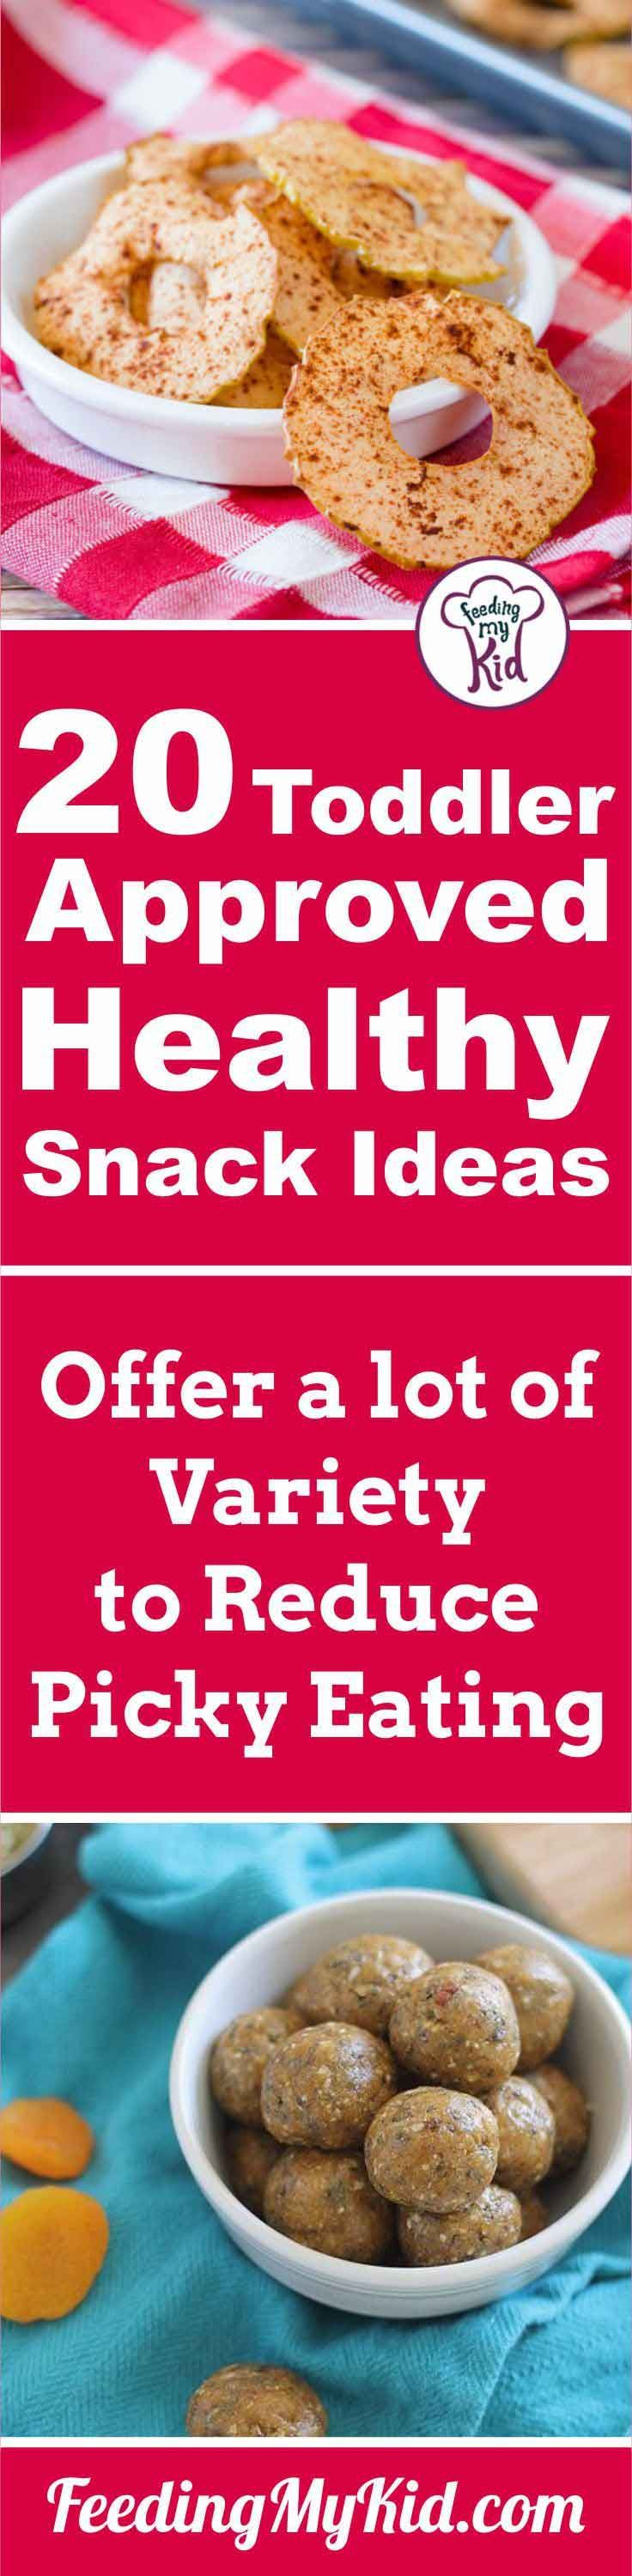 If you're looking for some healthy snacks for toddlers, look no further! This list has tons of different ideas your toddler will love to eat.